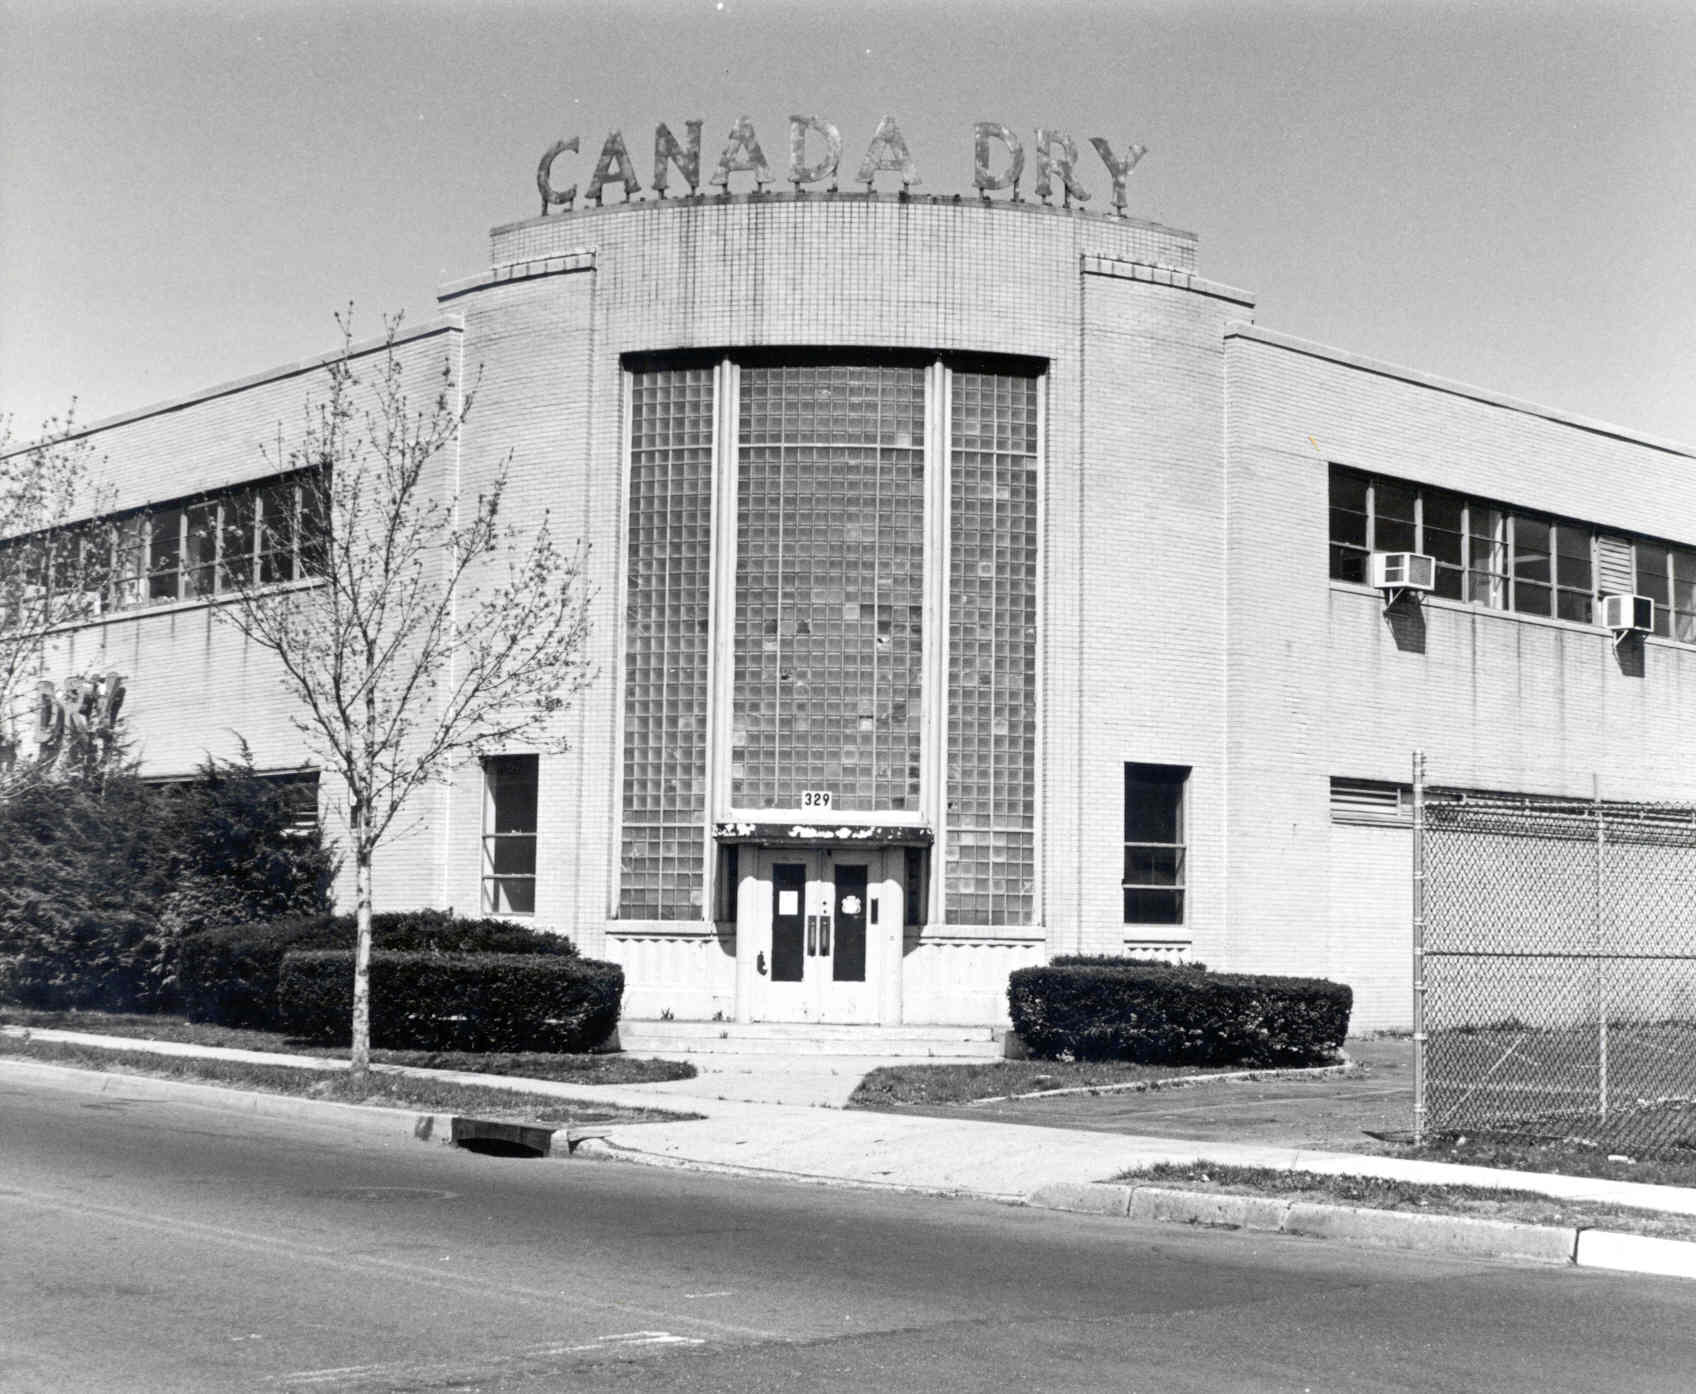 Courtesy Ford Portland >> Save the Canada Dry Building!